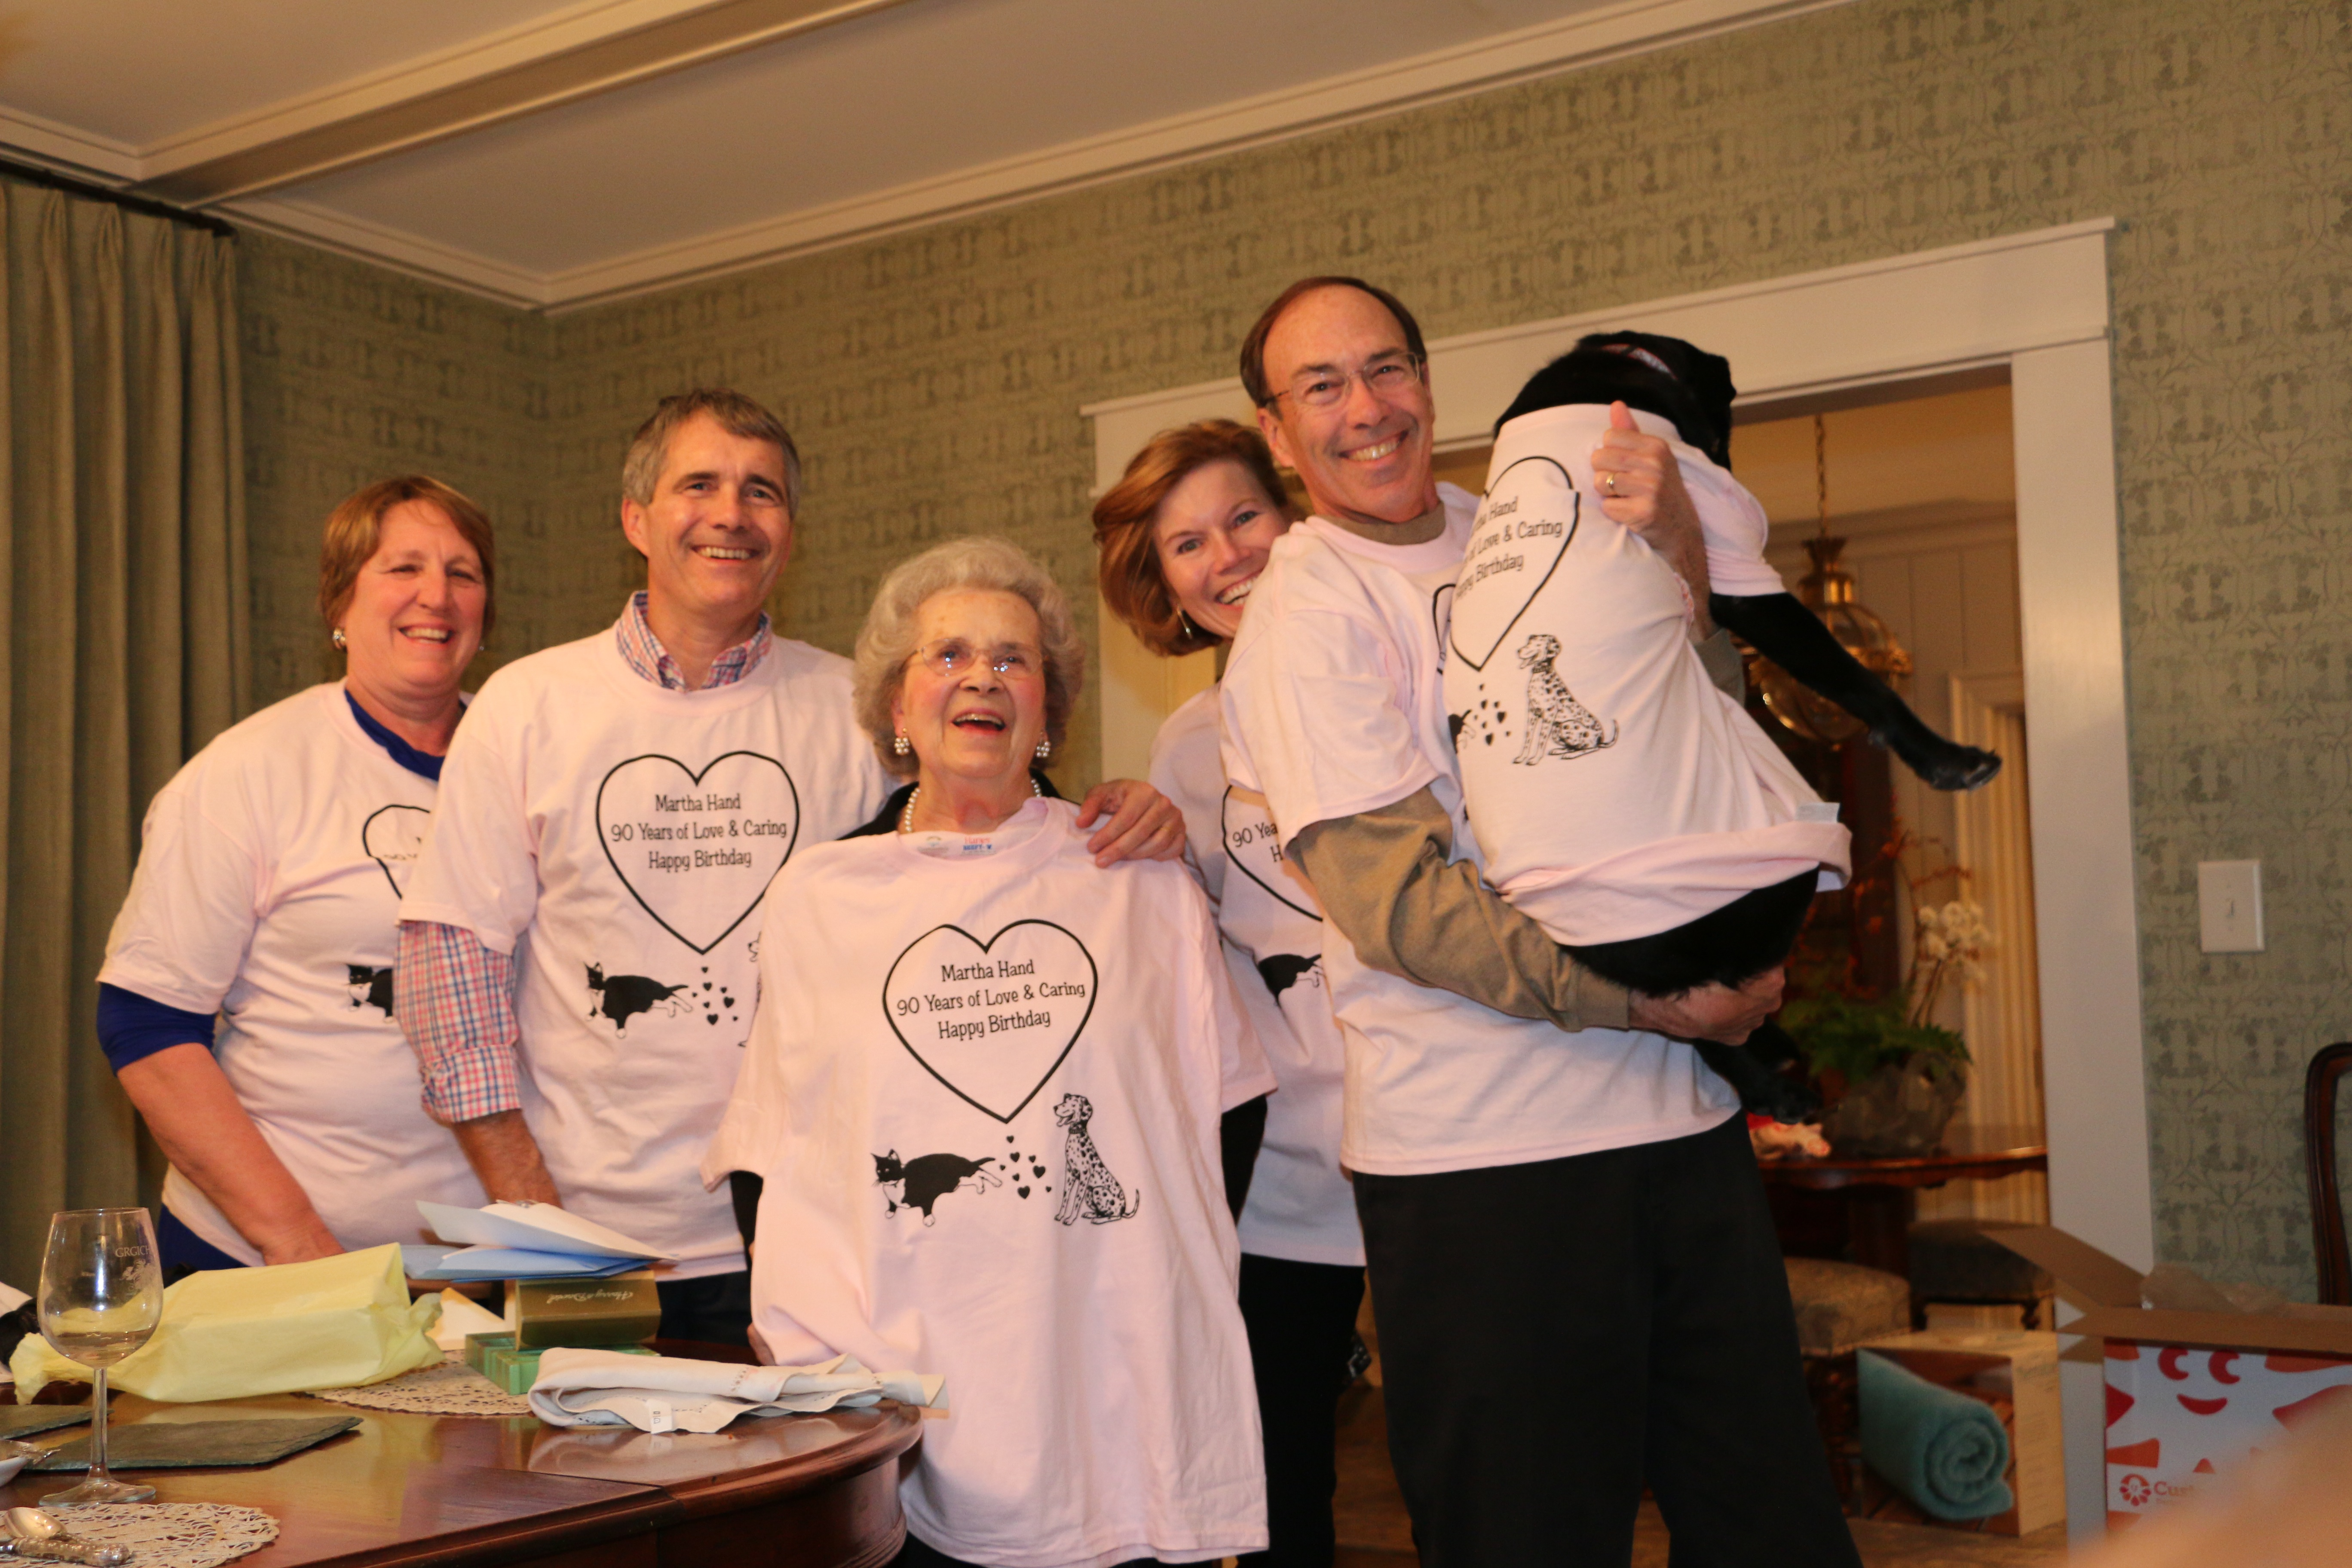 Marthas 90th Birthday Celebration With Family T Shirt Photo